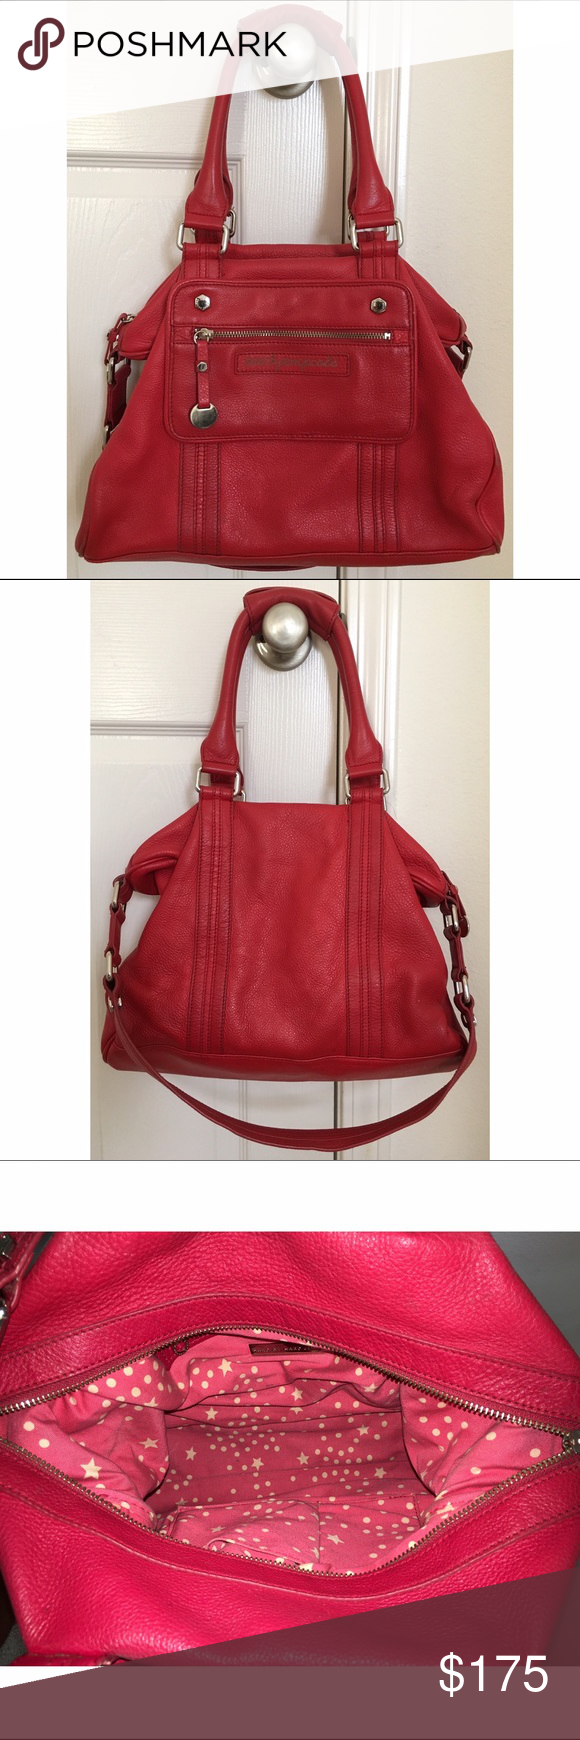 Marc by Marc Jacobs purse Red purse with silver accents by Mark Jacobs. Comes with shoulder handle/strap. It has an inner zipped pocket and two other pockets on the opposite side that can hold small items such as lipgloss, etc. The two handles can be buckled together to make it easier to carry. Used occasionally, in very good condition! Marc by Marc Jacobs Bags